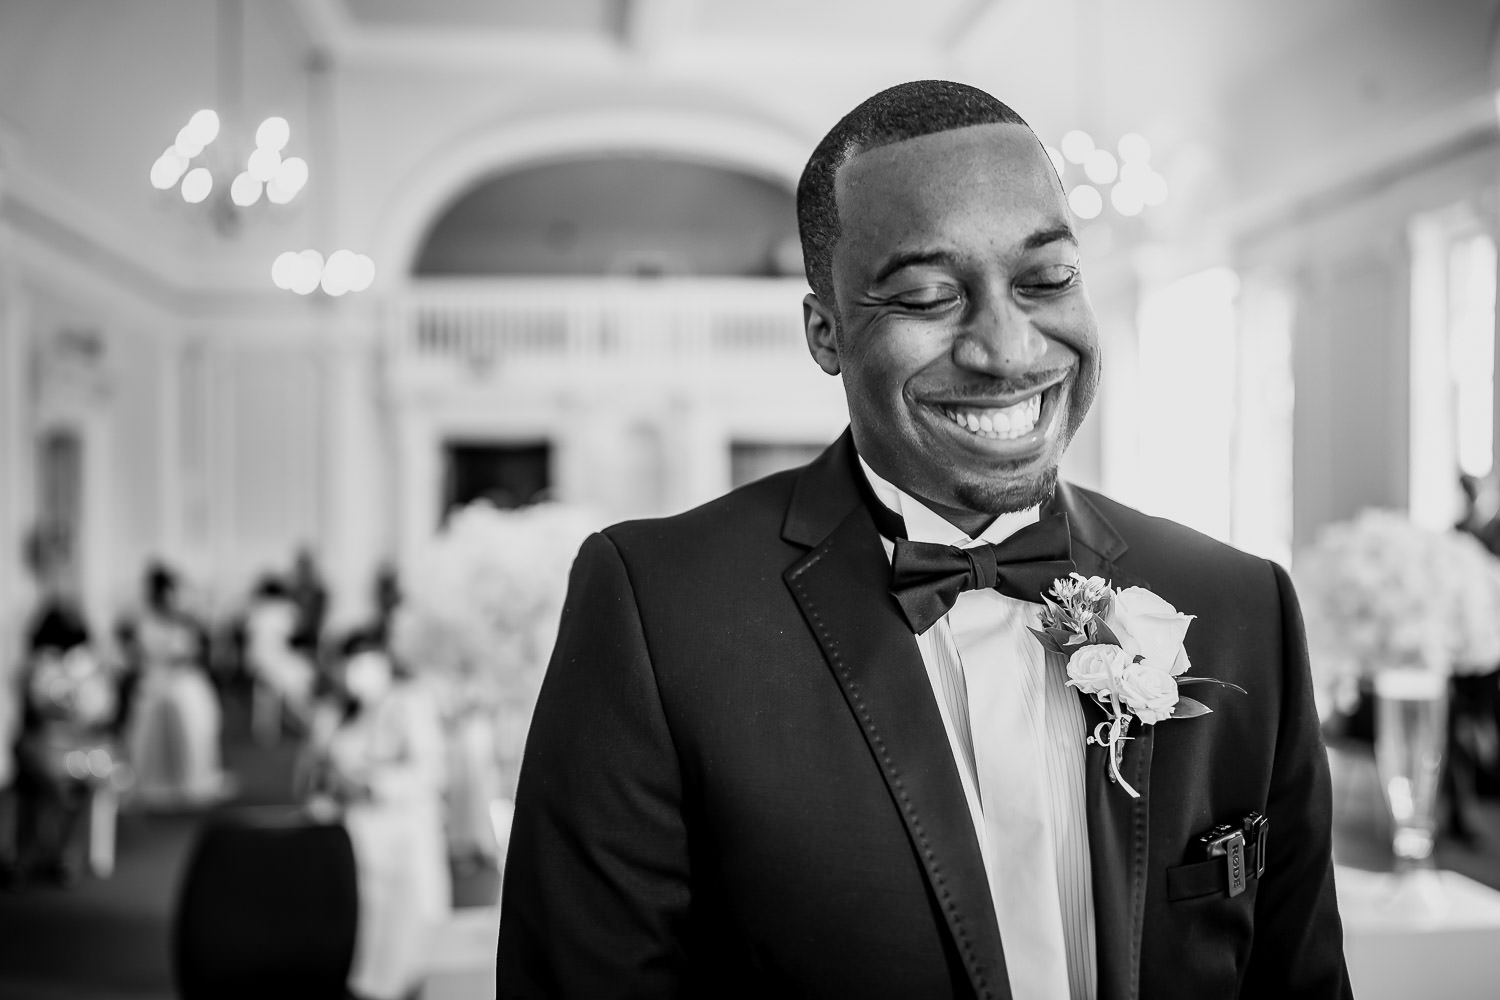 The Groom with the biggest of smiles as he waits for his Bride at the end of the aisle.